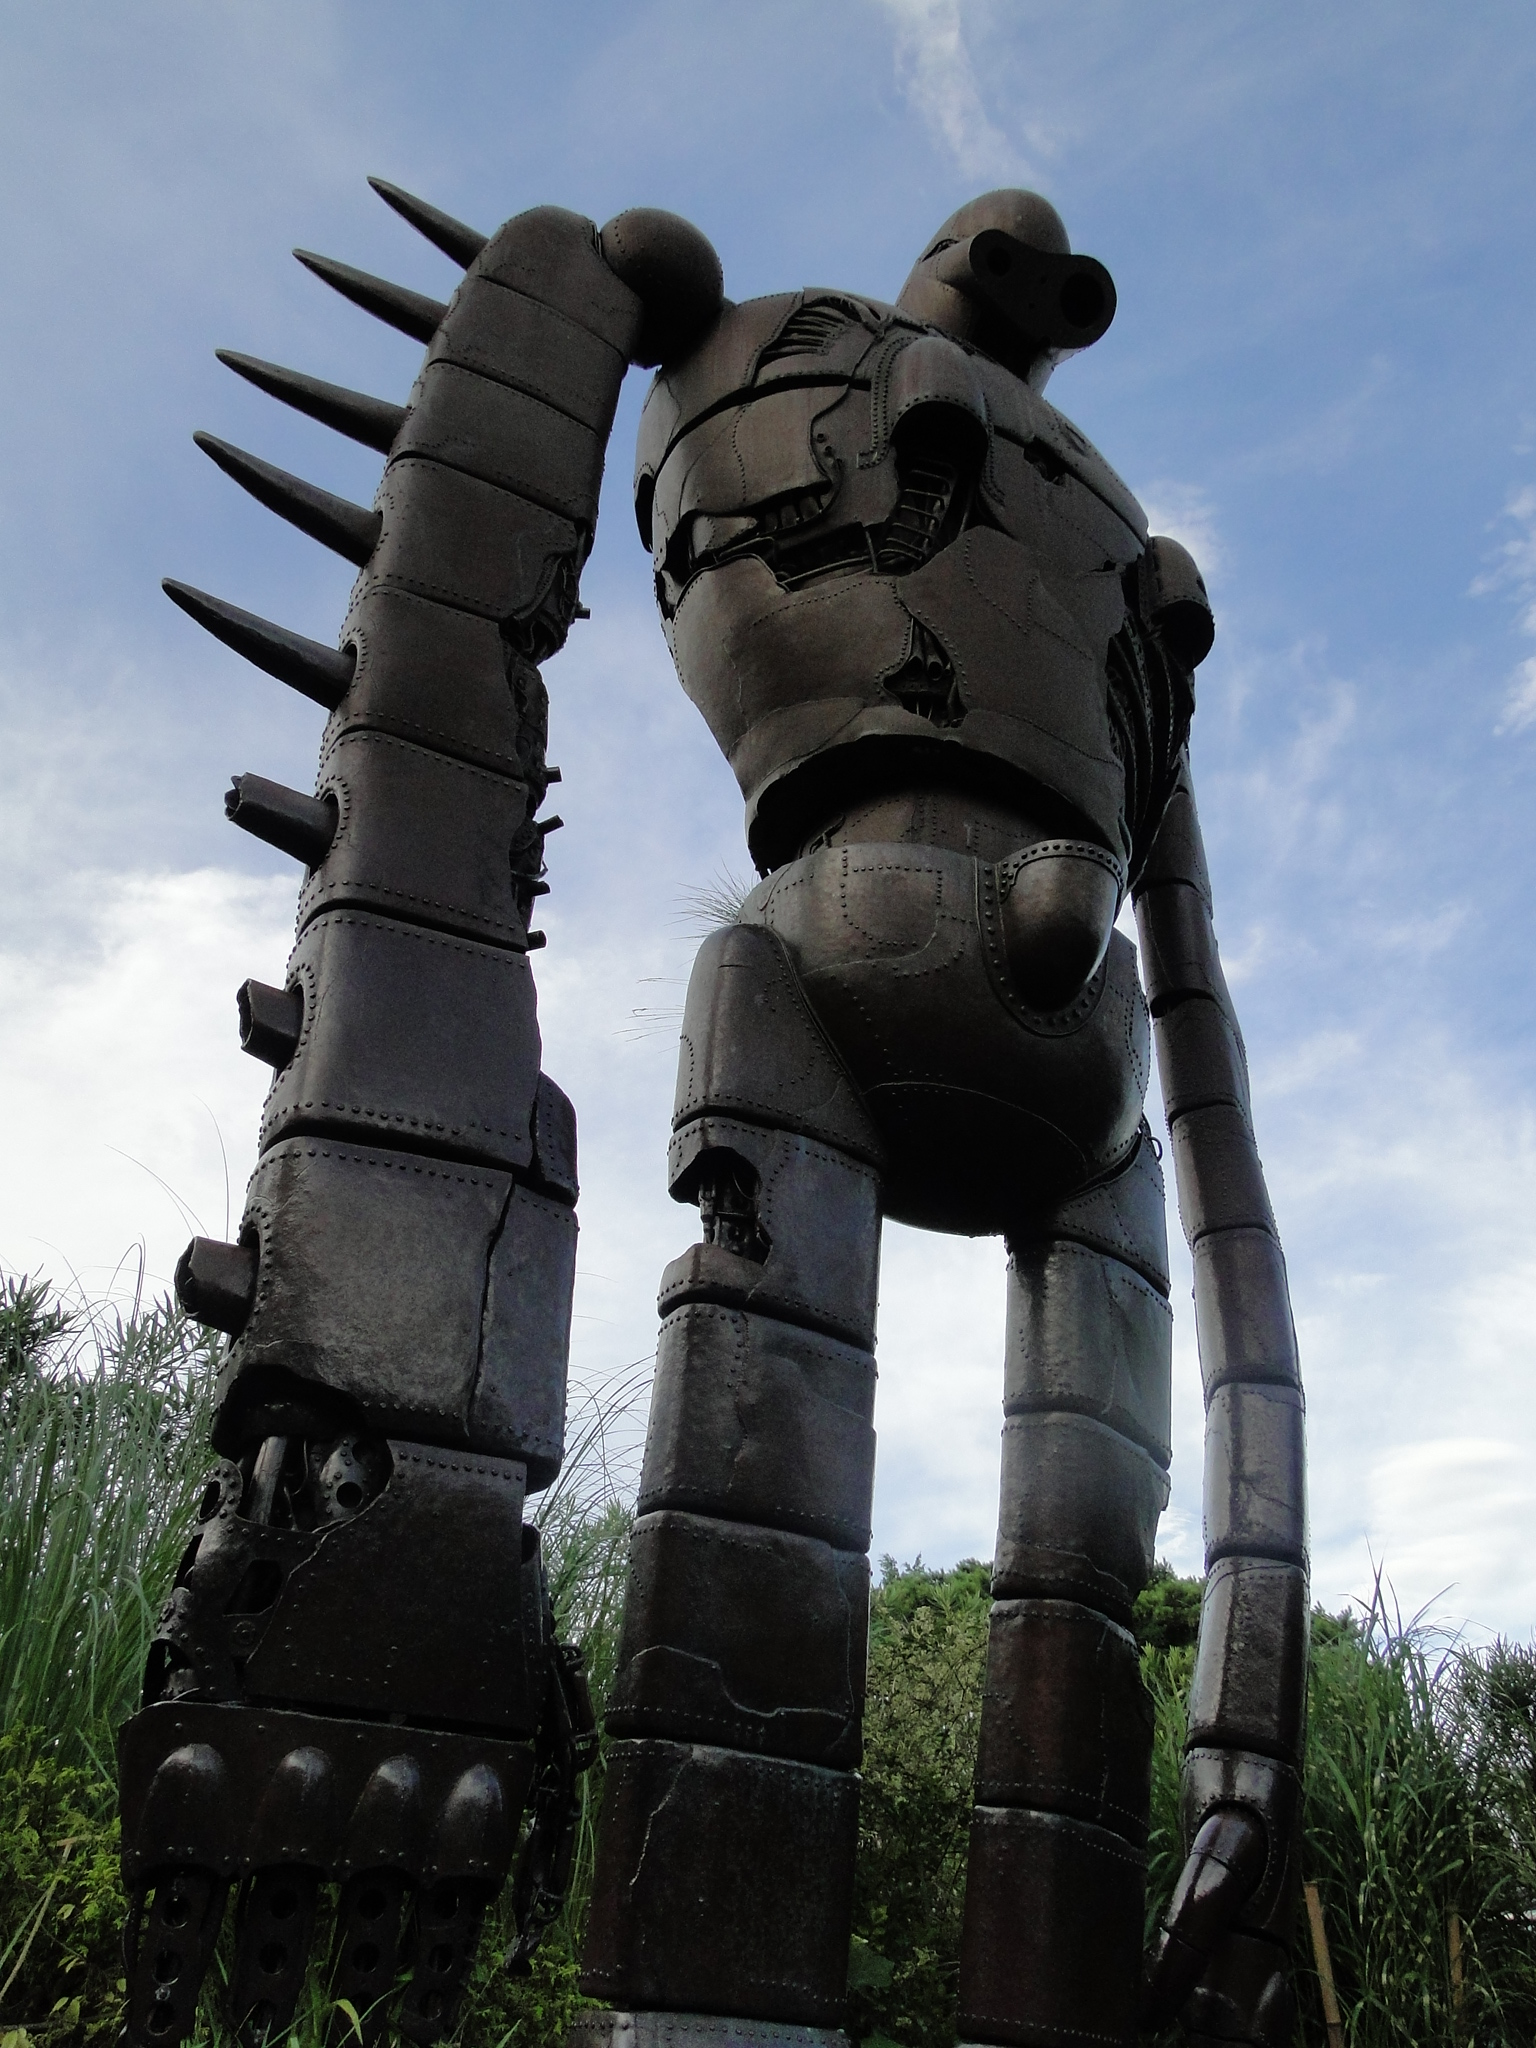 how to get tickets to ghibli museum